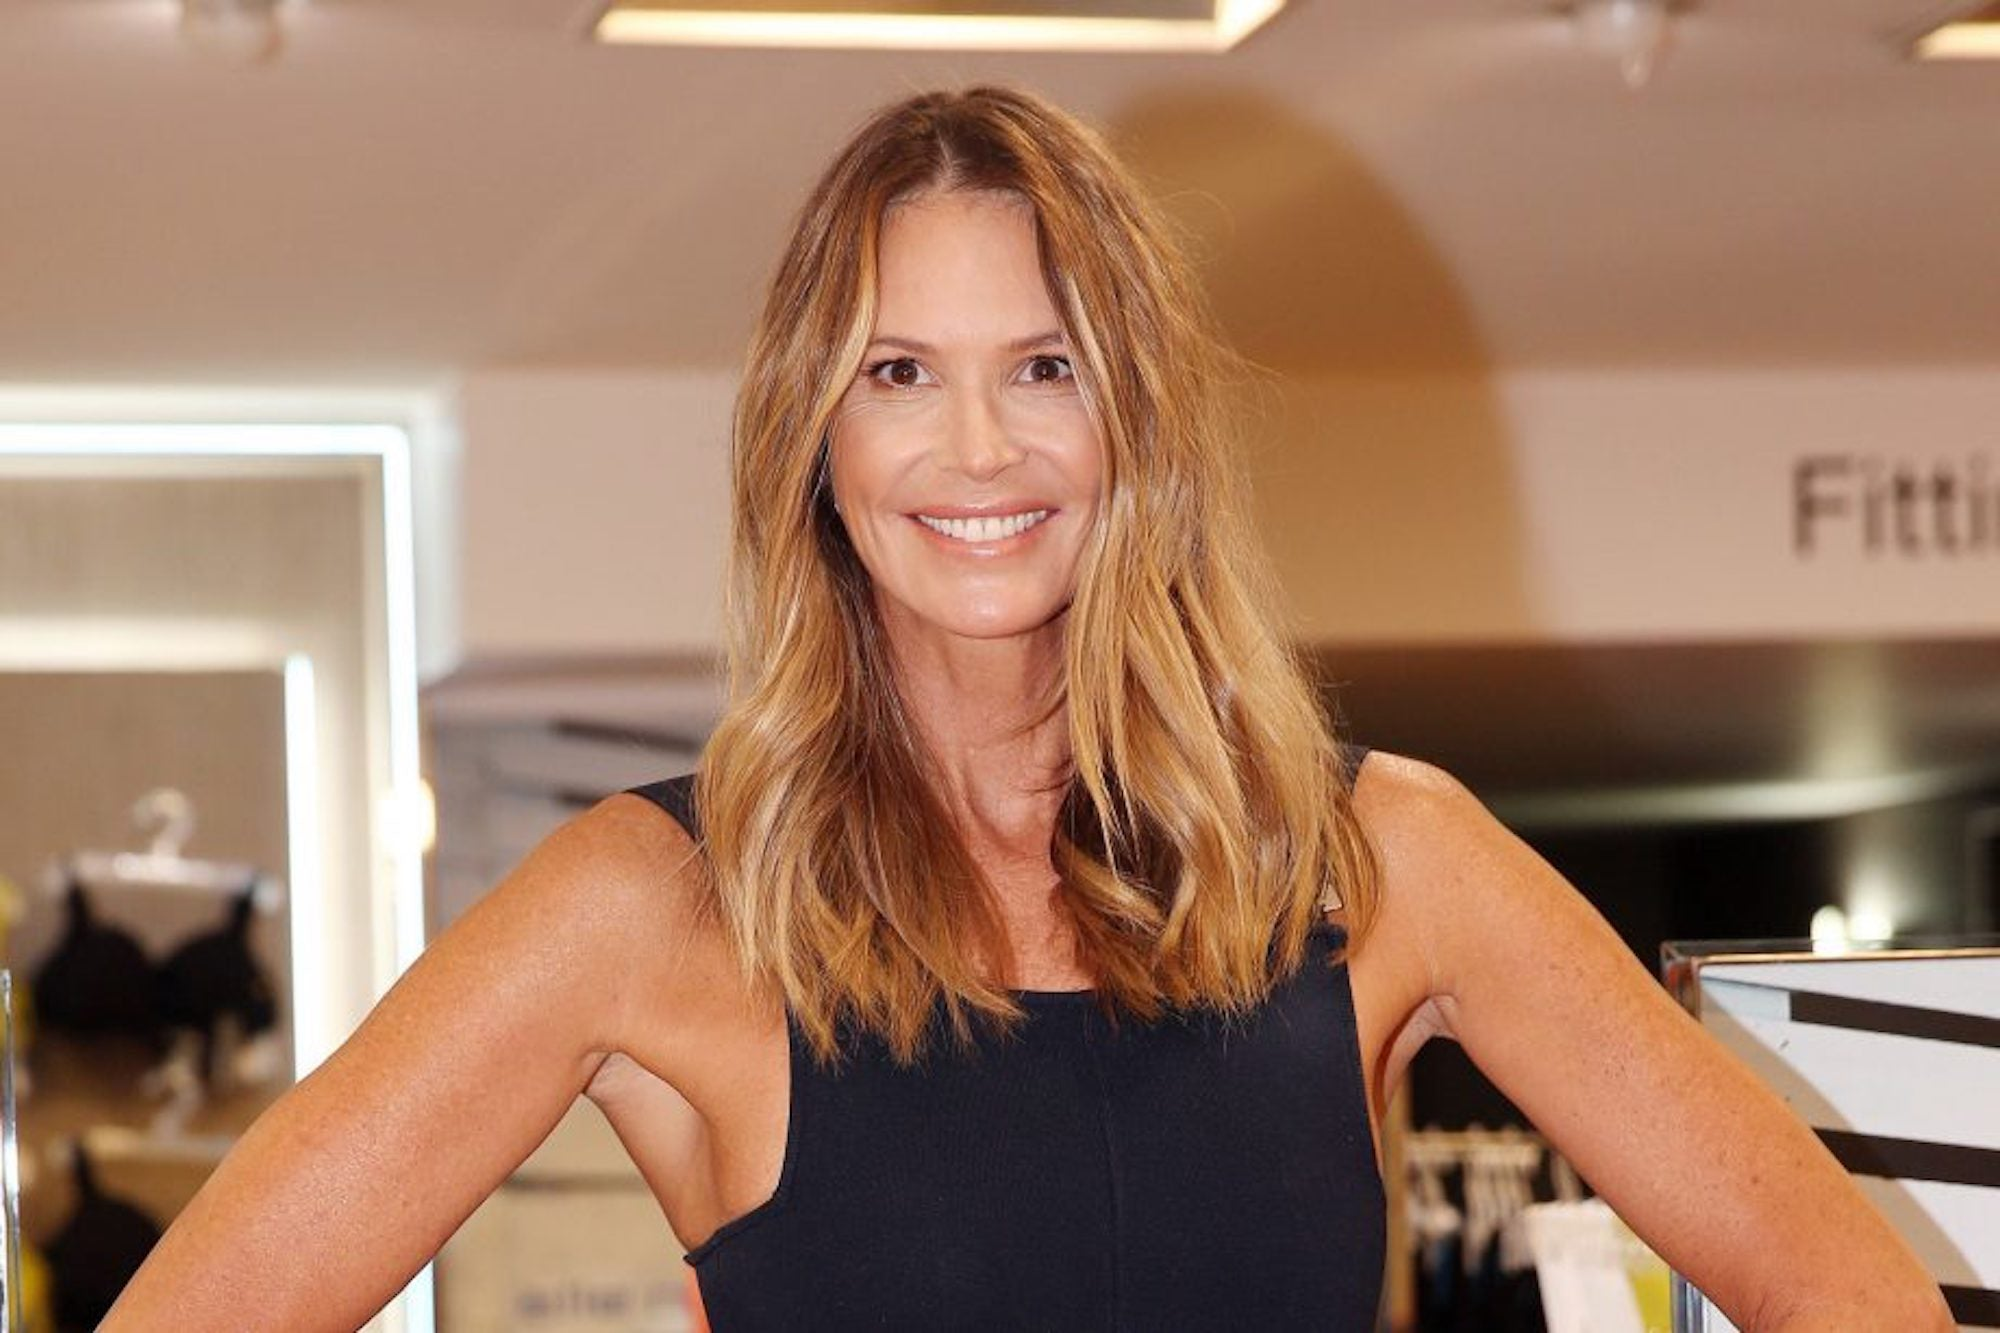 Elle Macpherson Shares her Health and Beauty Secrets